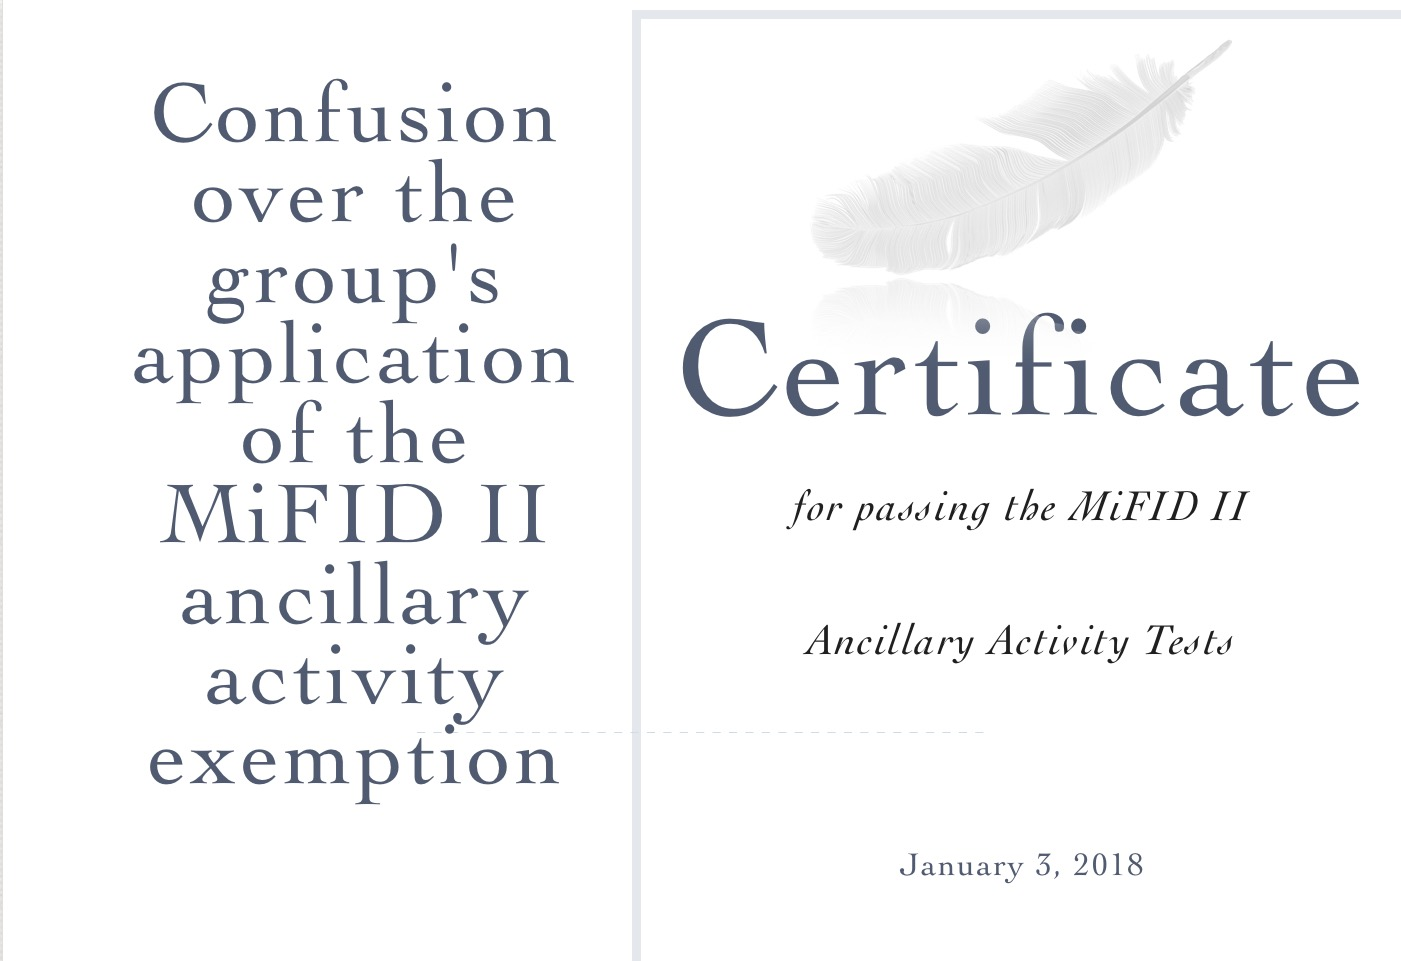 Certificate for passing the MiFID II Ancillary Activity Tests